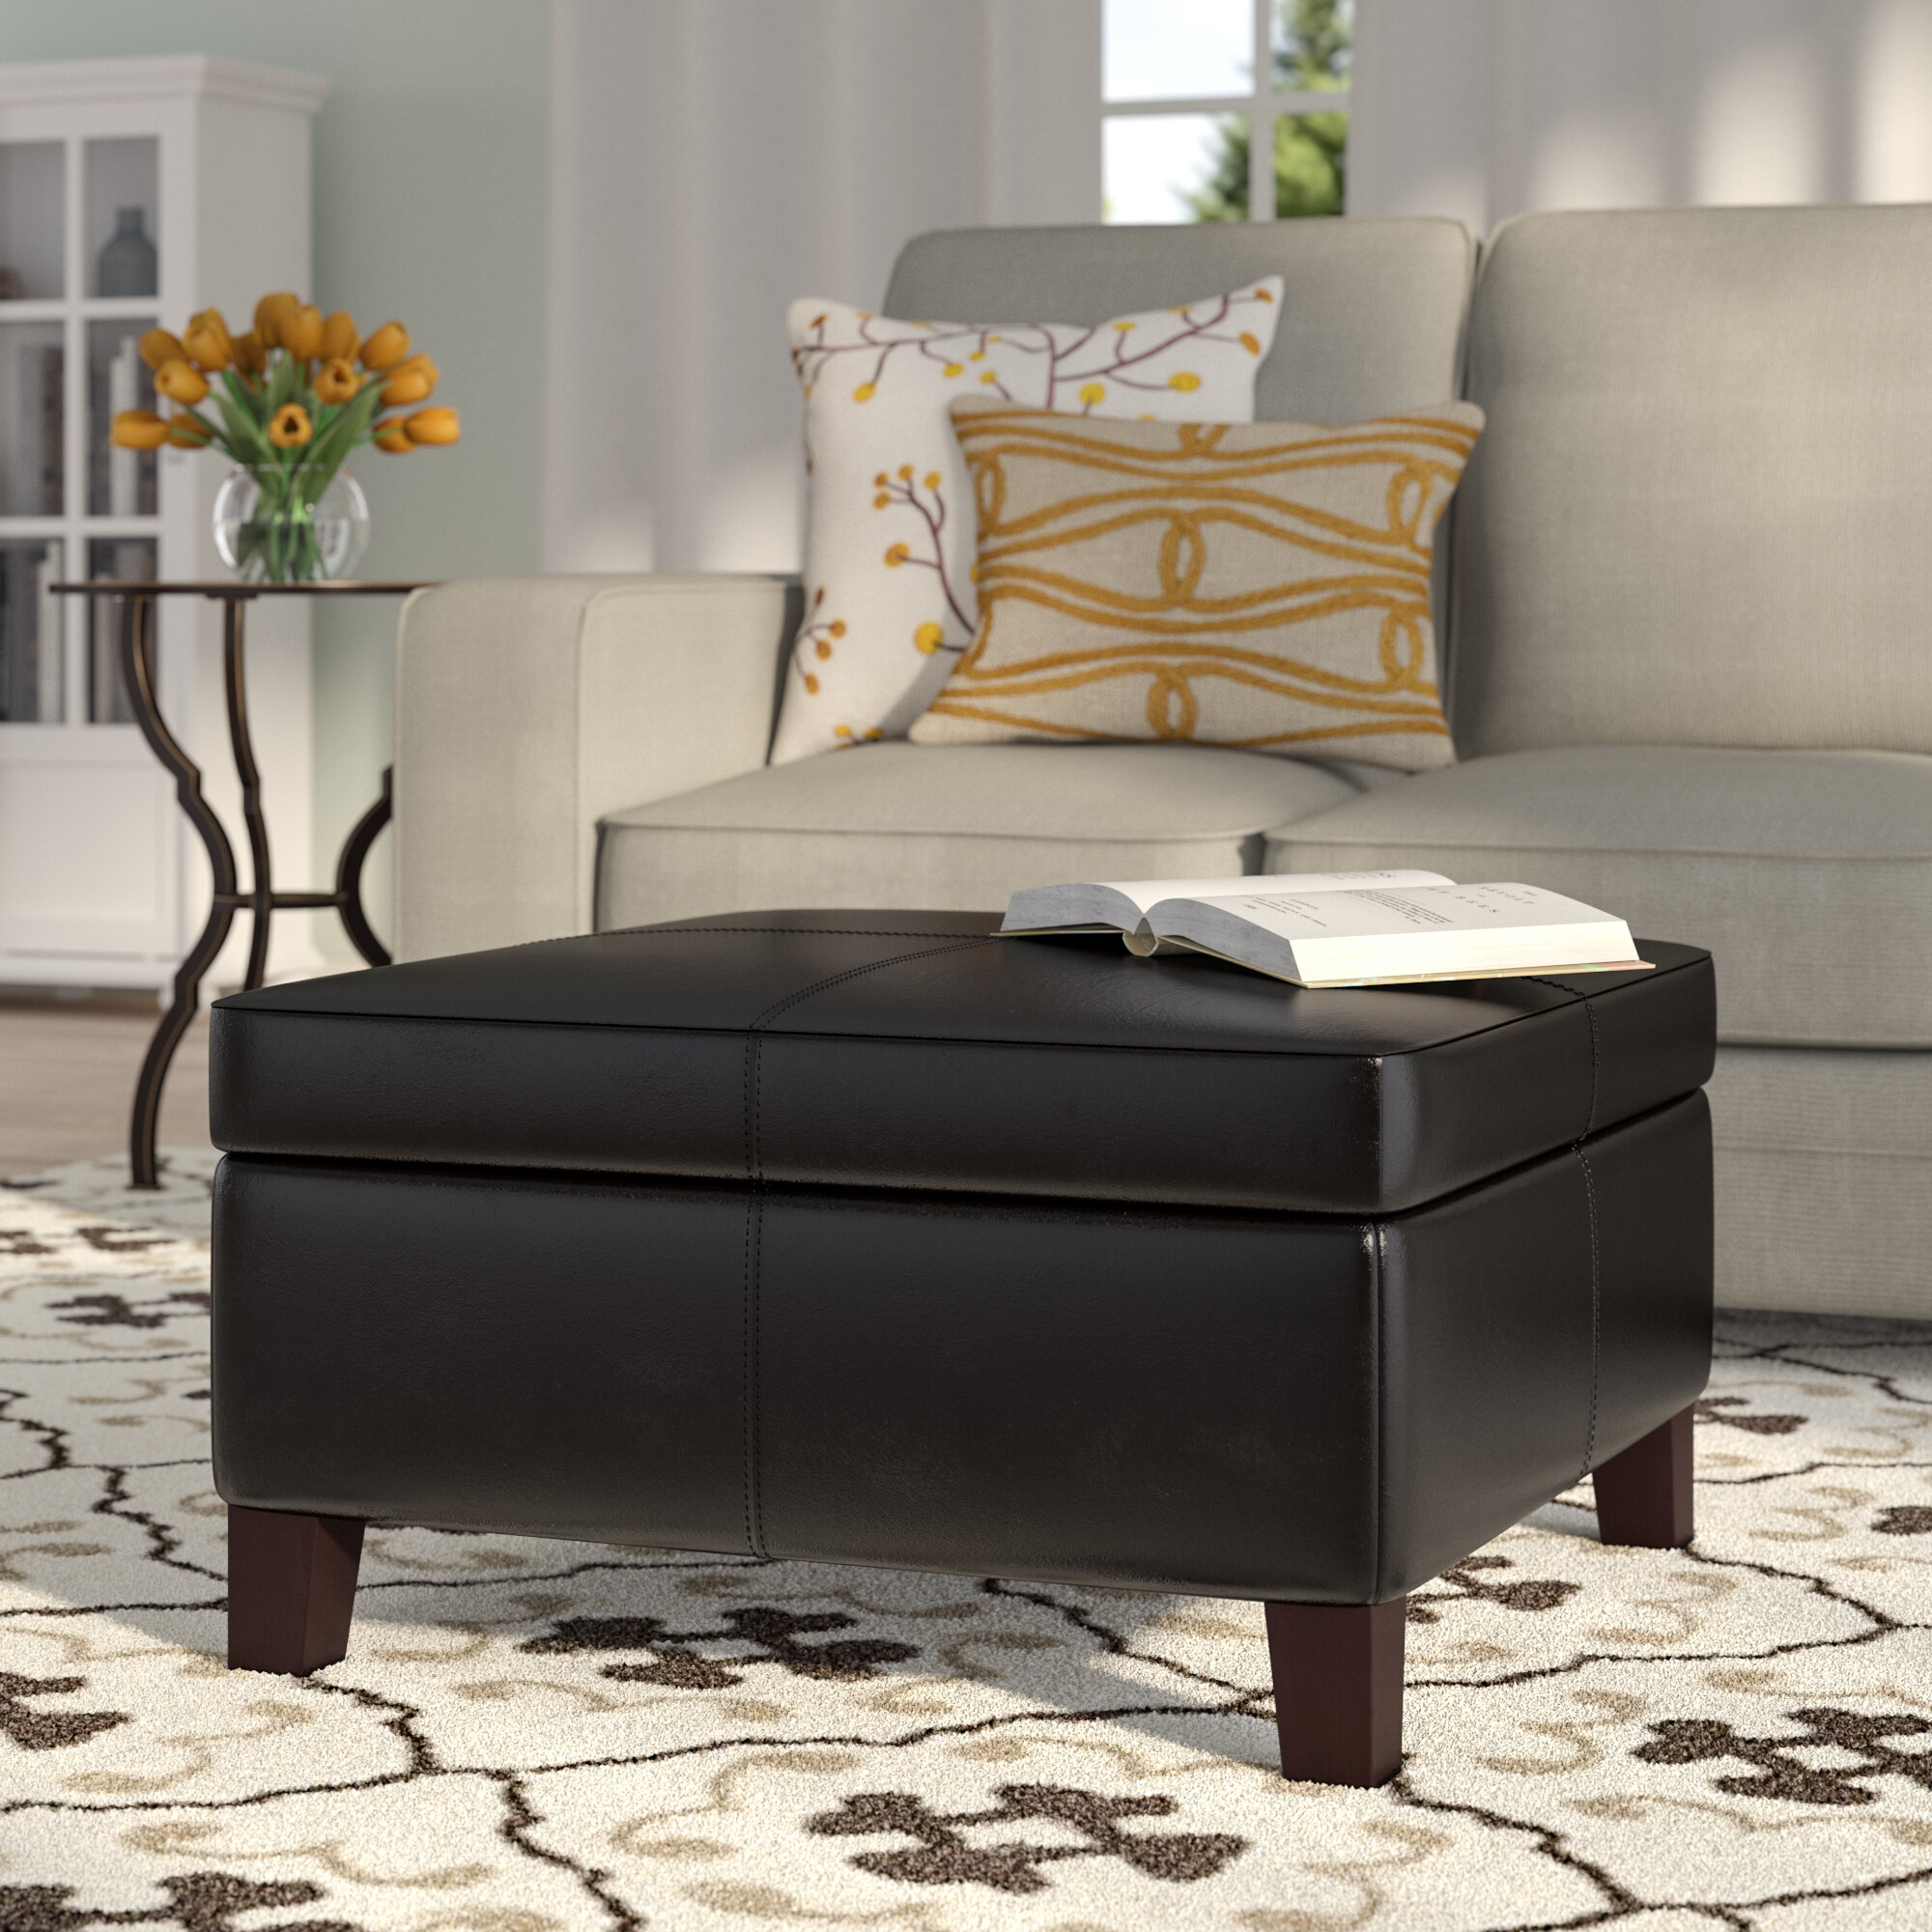 oversized bench ottoman ways favorable furniture home to e round your leather luxuriant fabric cocktail table for storage create